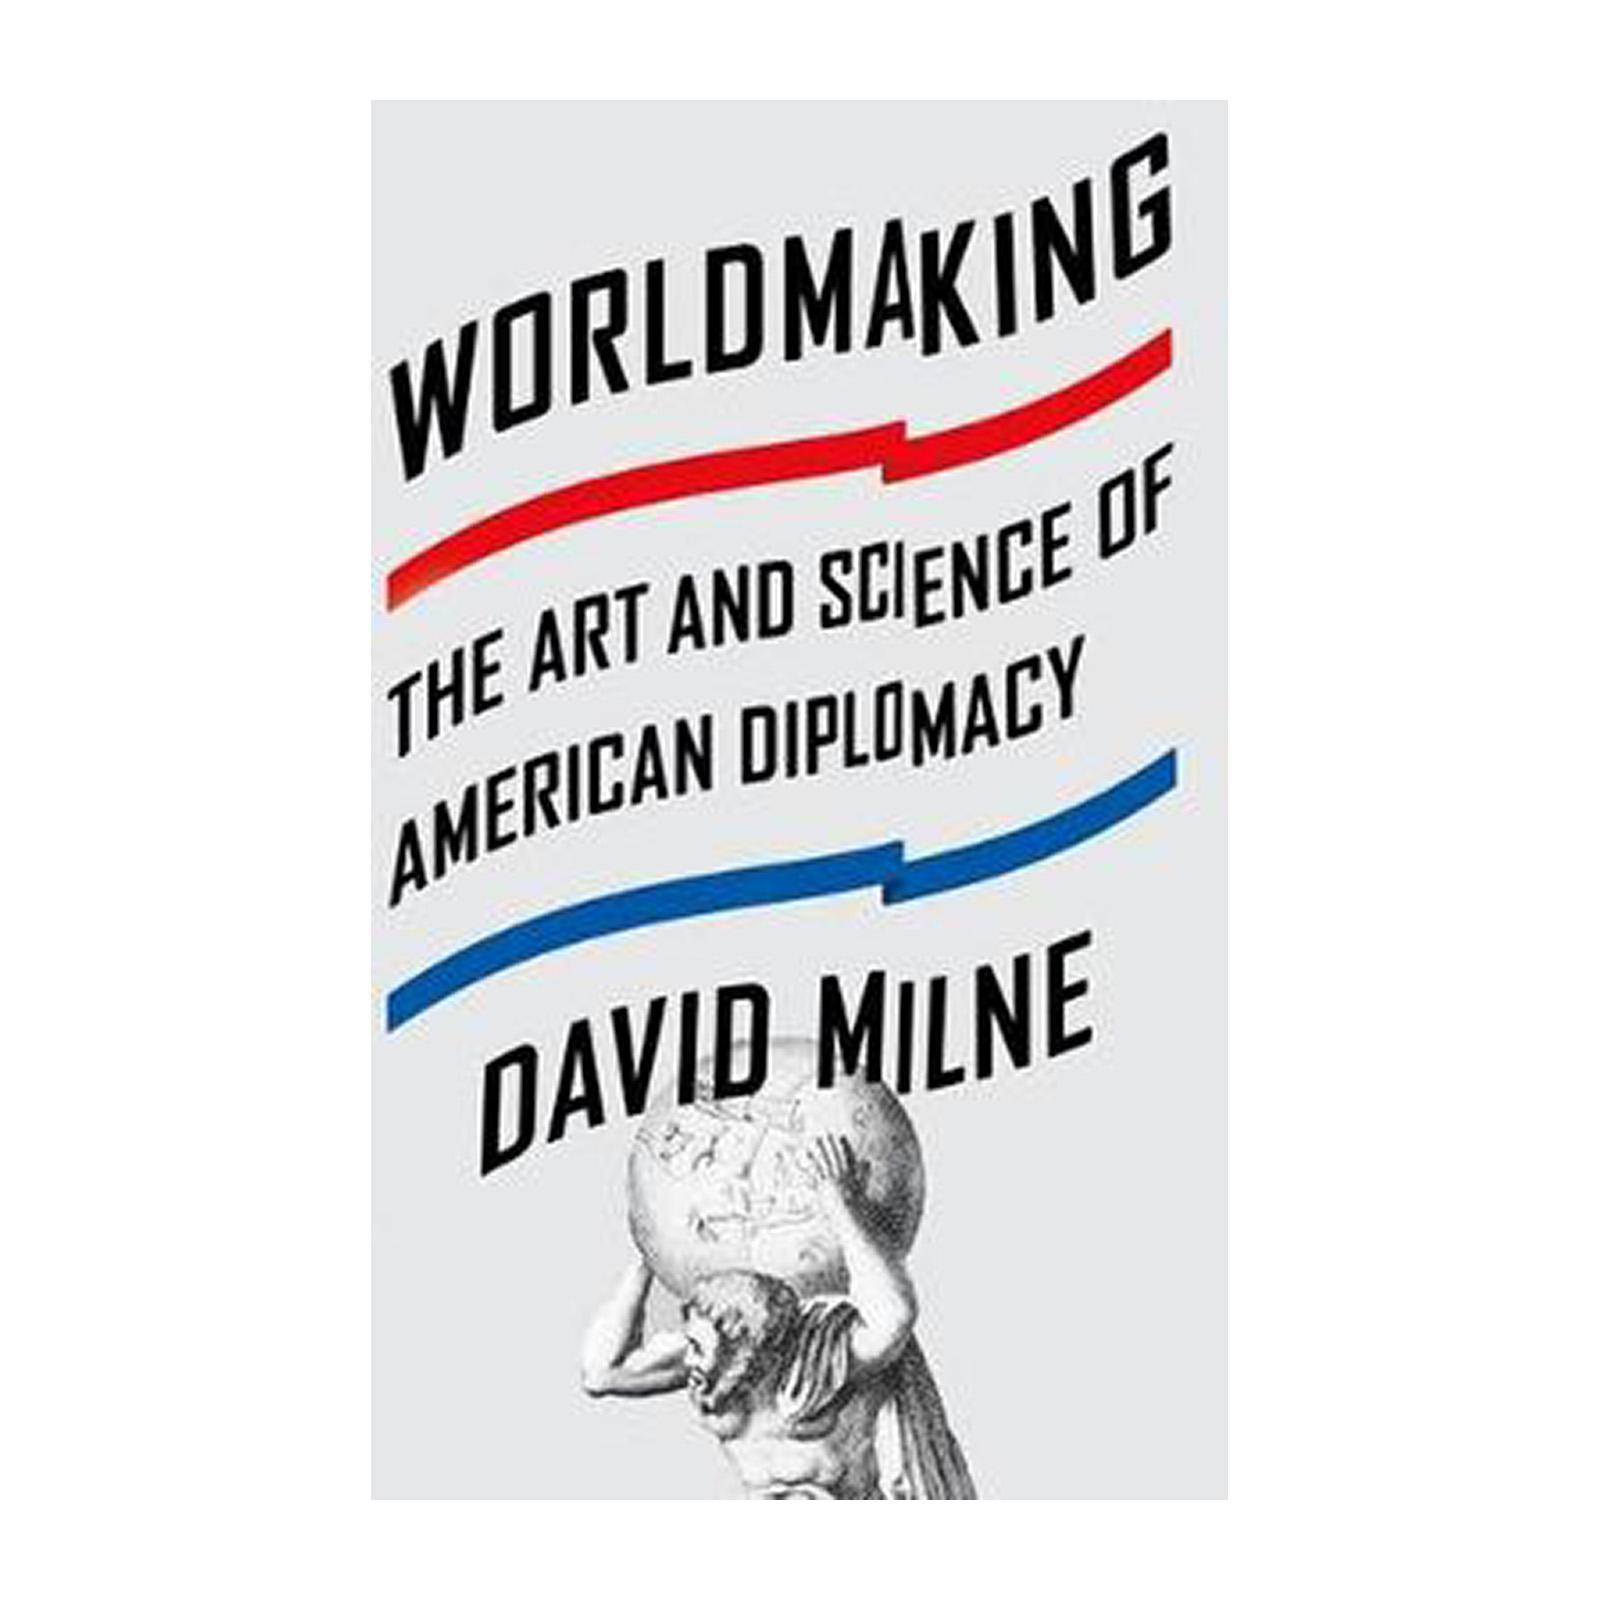 Worldmaking: The Art And Science Of American Diplomacy (Paperback)